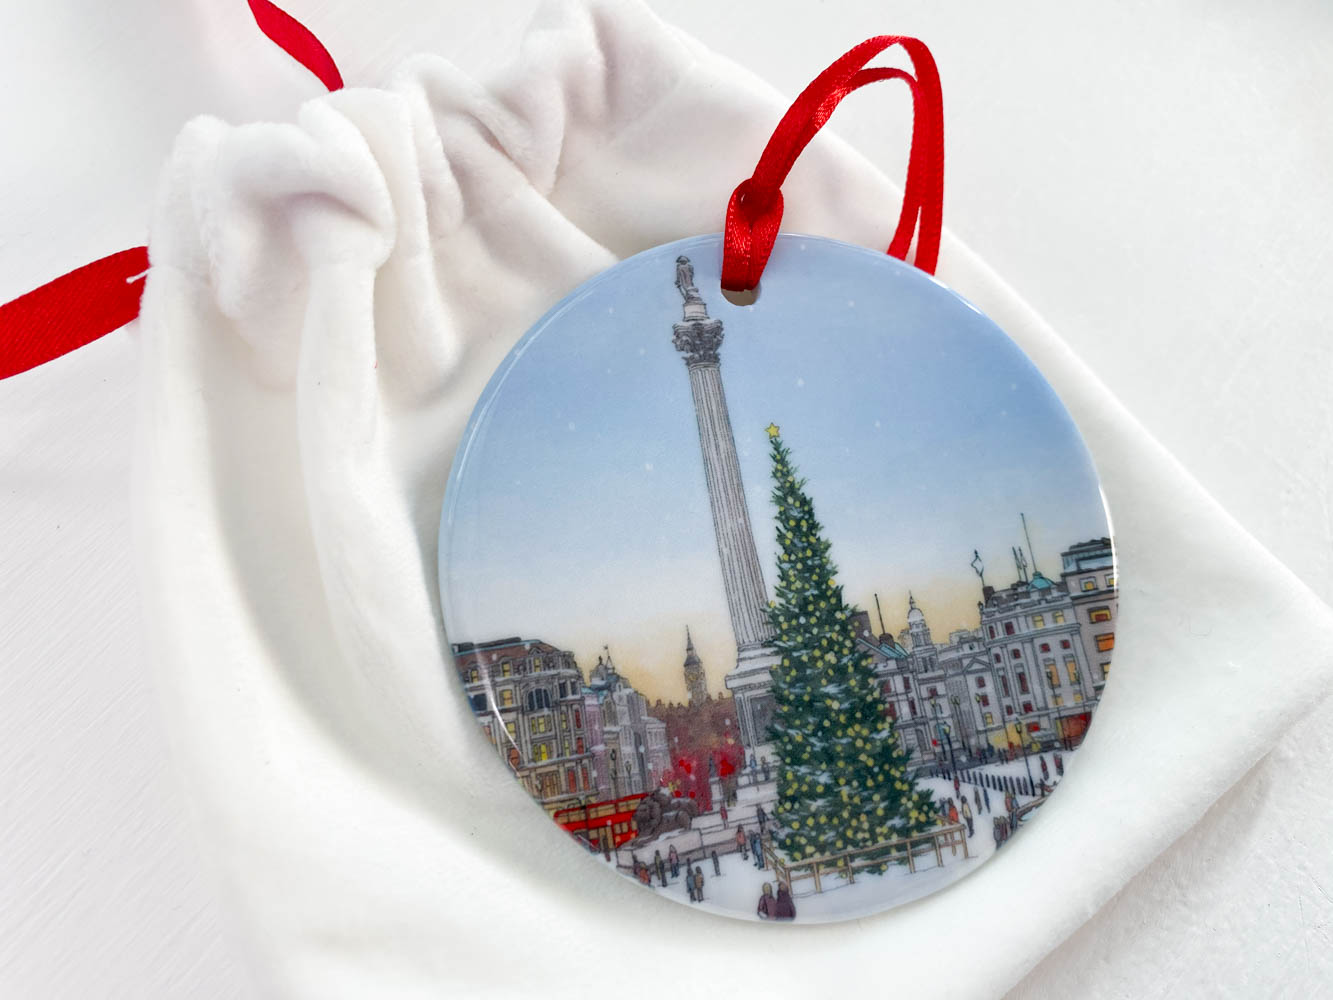 Trafalgar Square Christmas Tree Decoration - Illustration by Jonathan Chapman